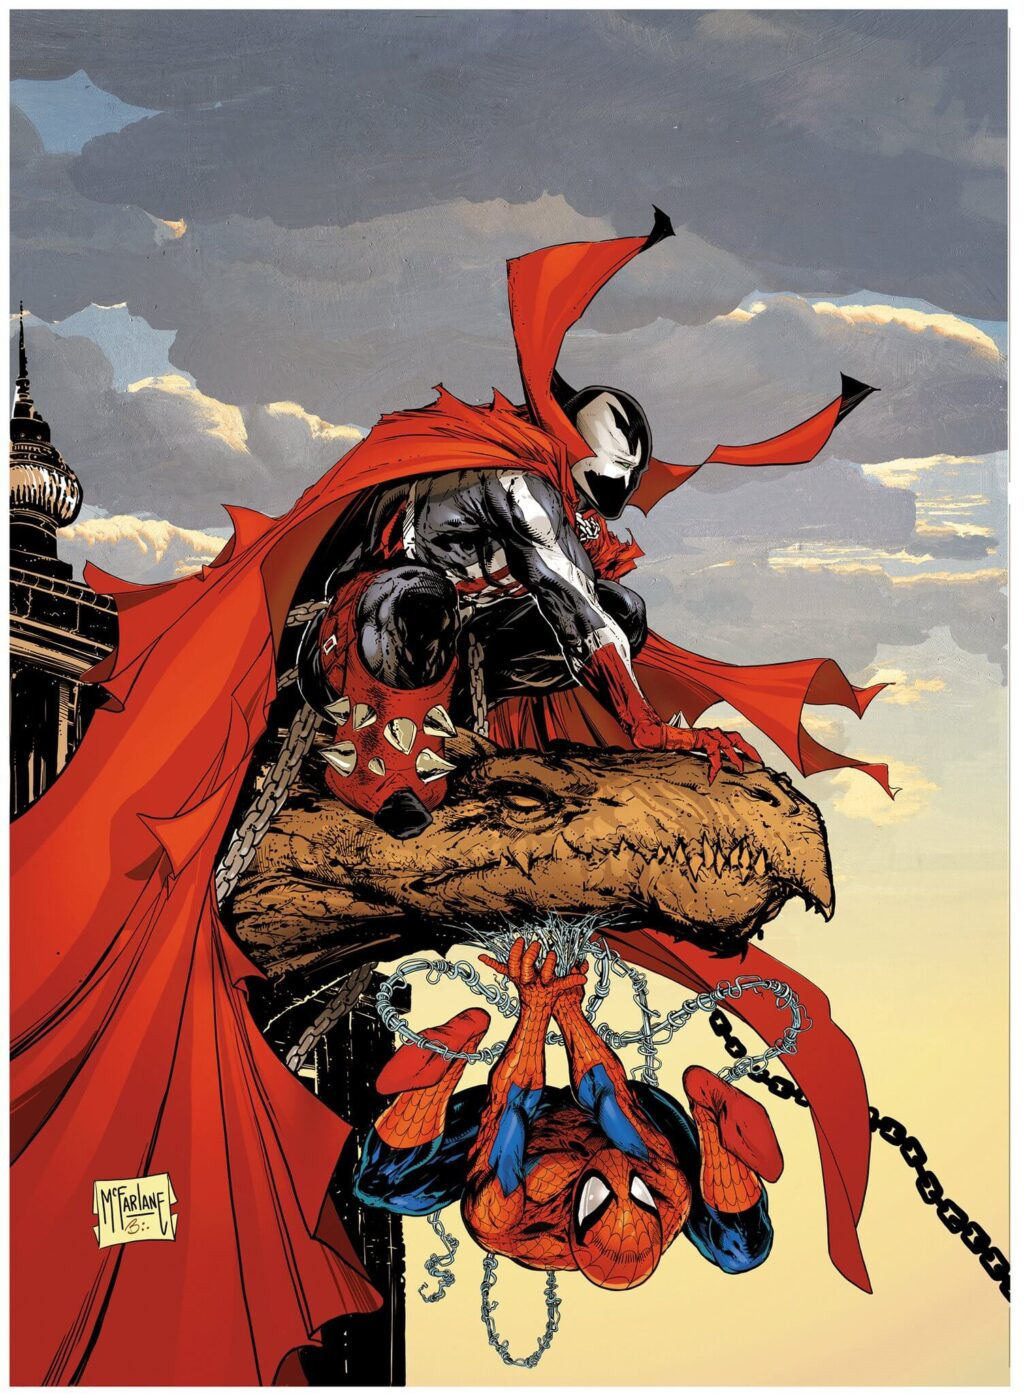 spawn spider man book cover 1 1024x1394 - Spawn Meets Spider-Man In Epic New Book Cover Drawn By Todd McFarlane